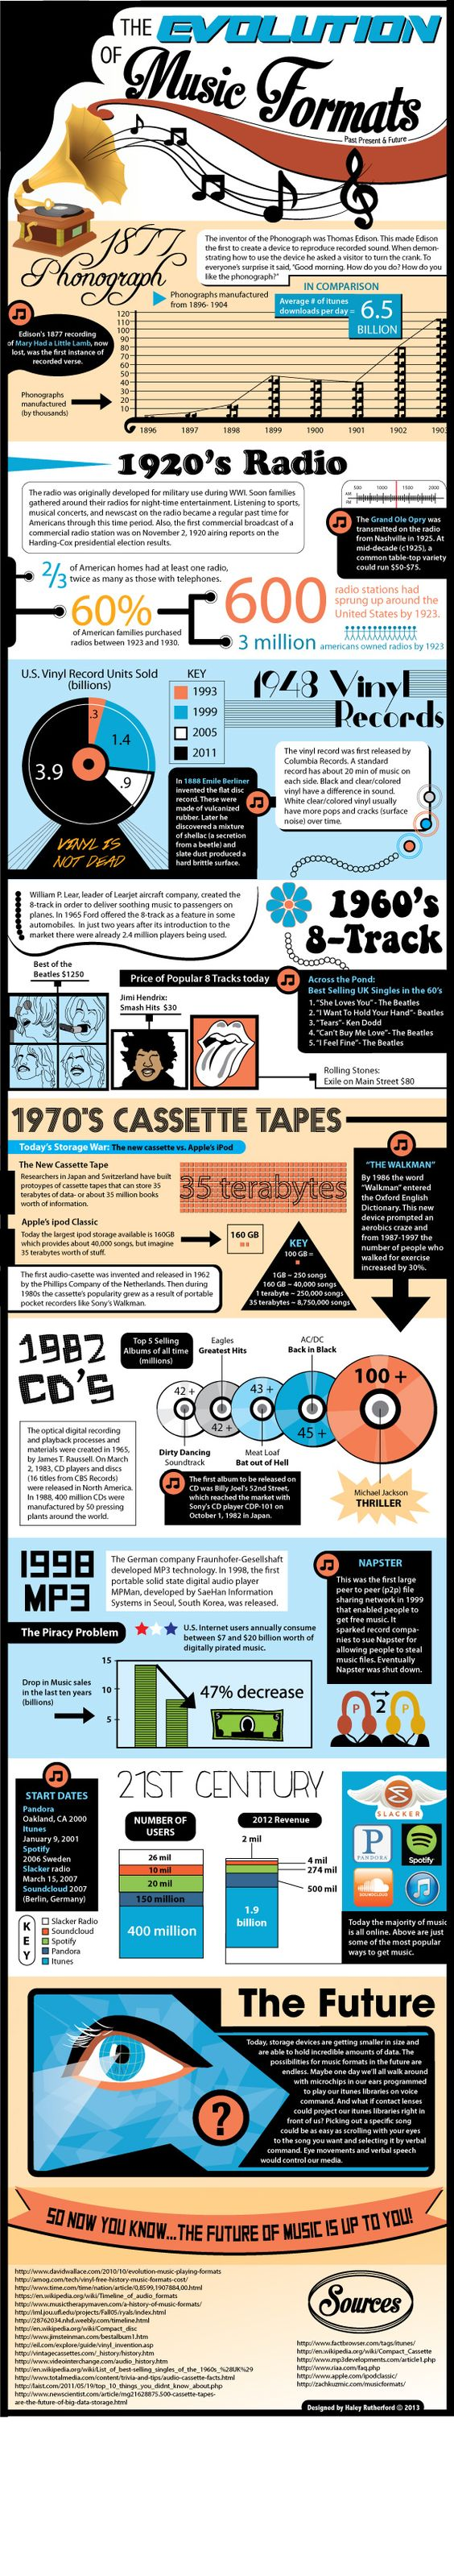 The Evolution of Music Formats by Haley Rutherford, via Behance - poster for school?